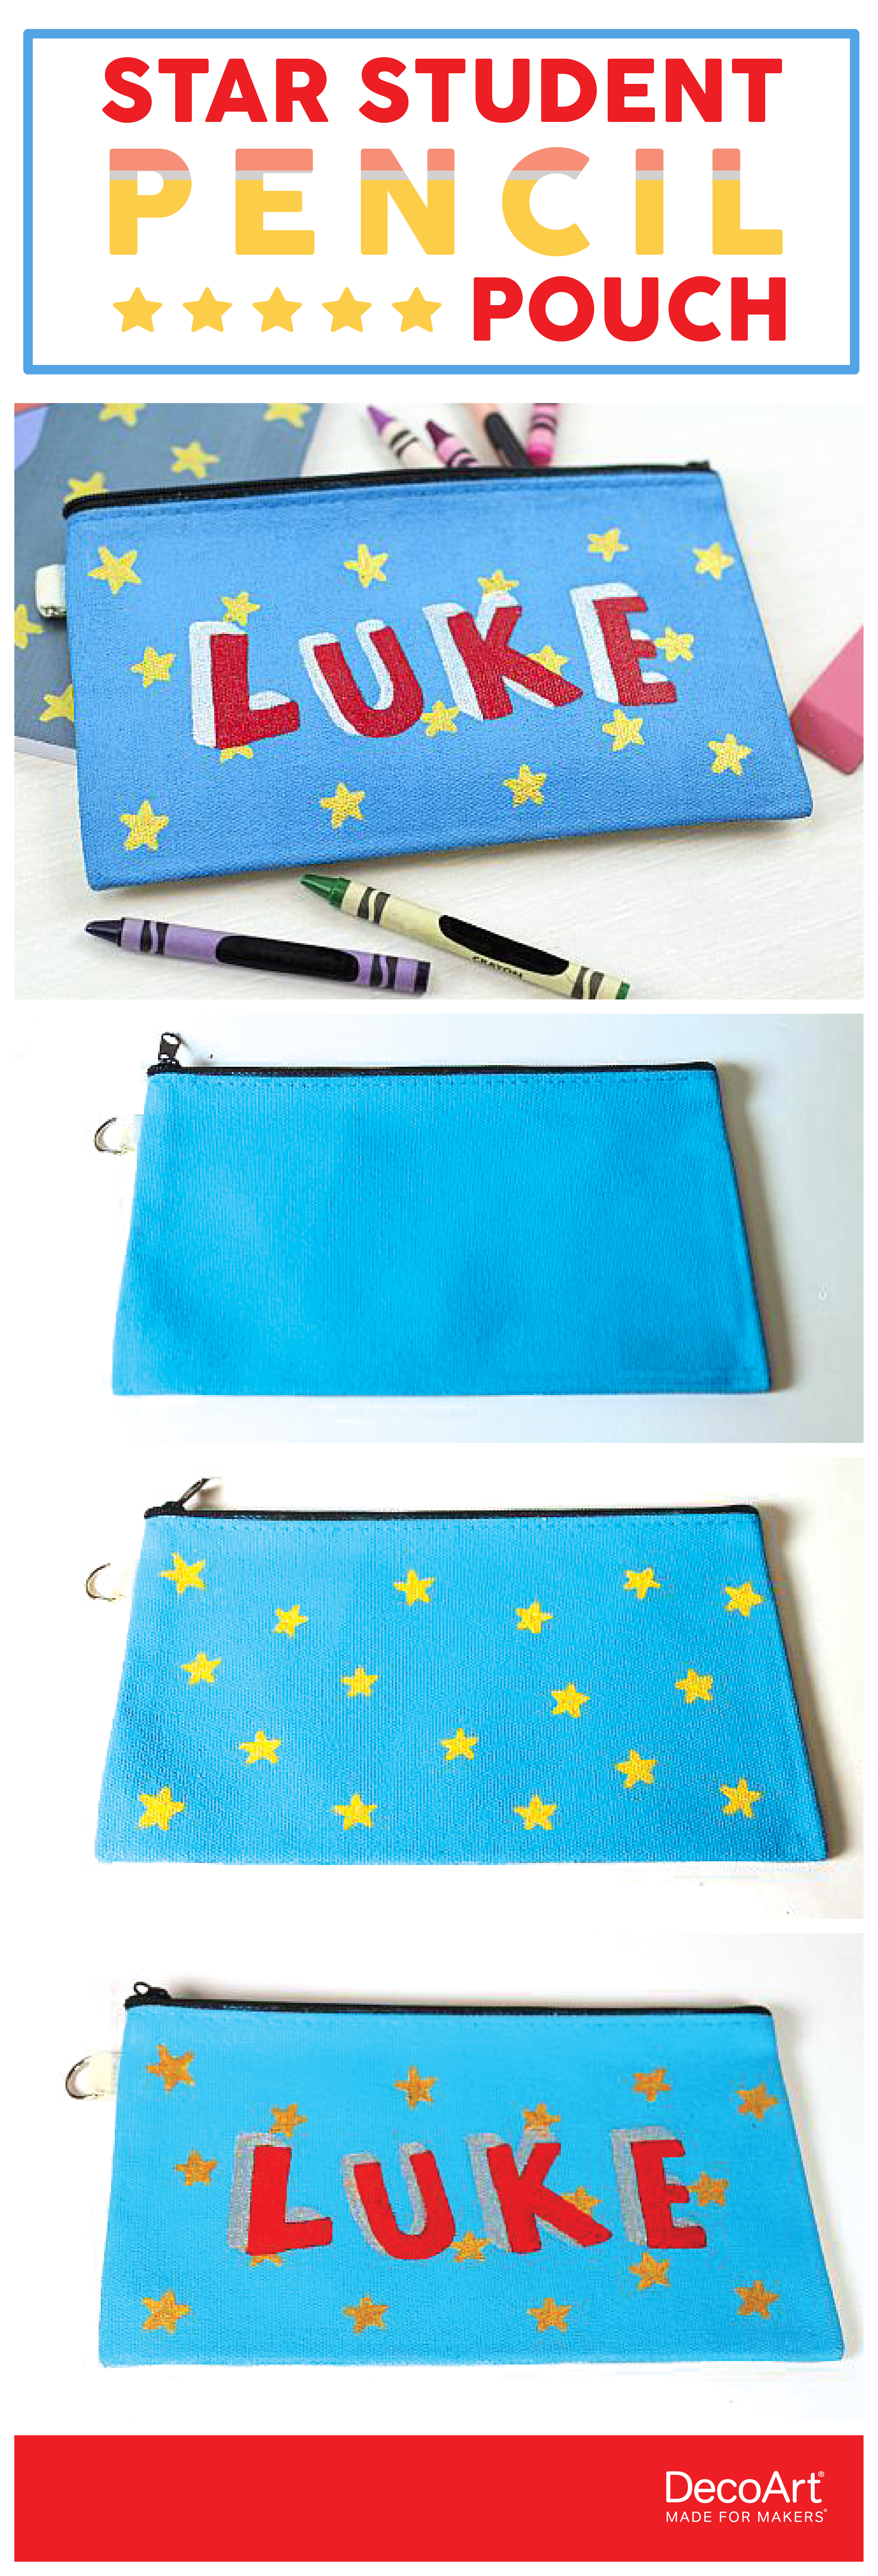 Stars Named Pencil Pouch